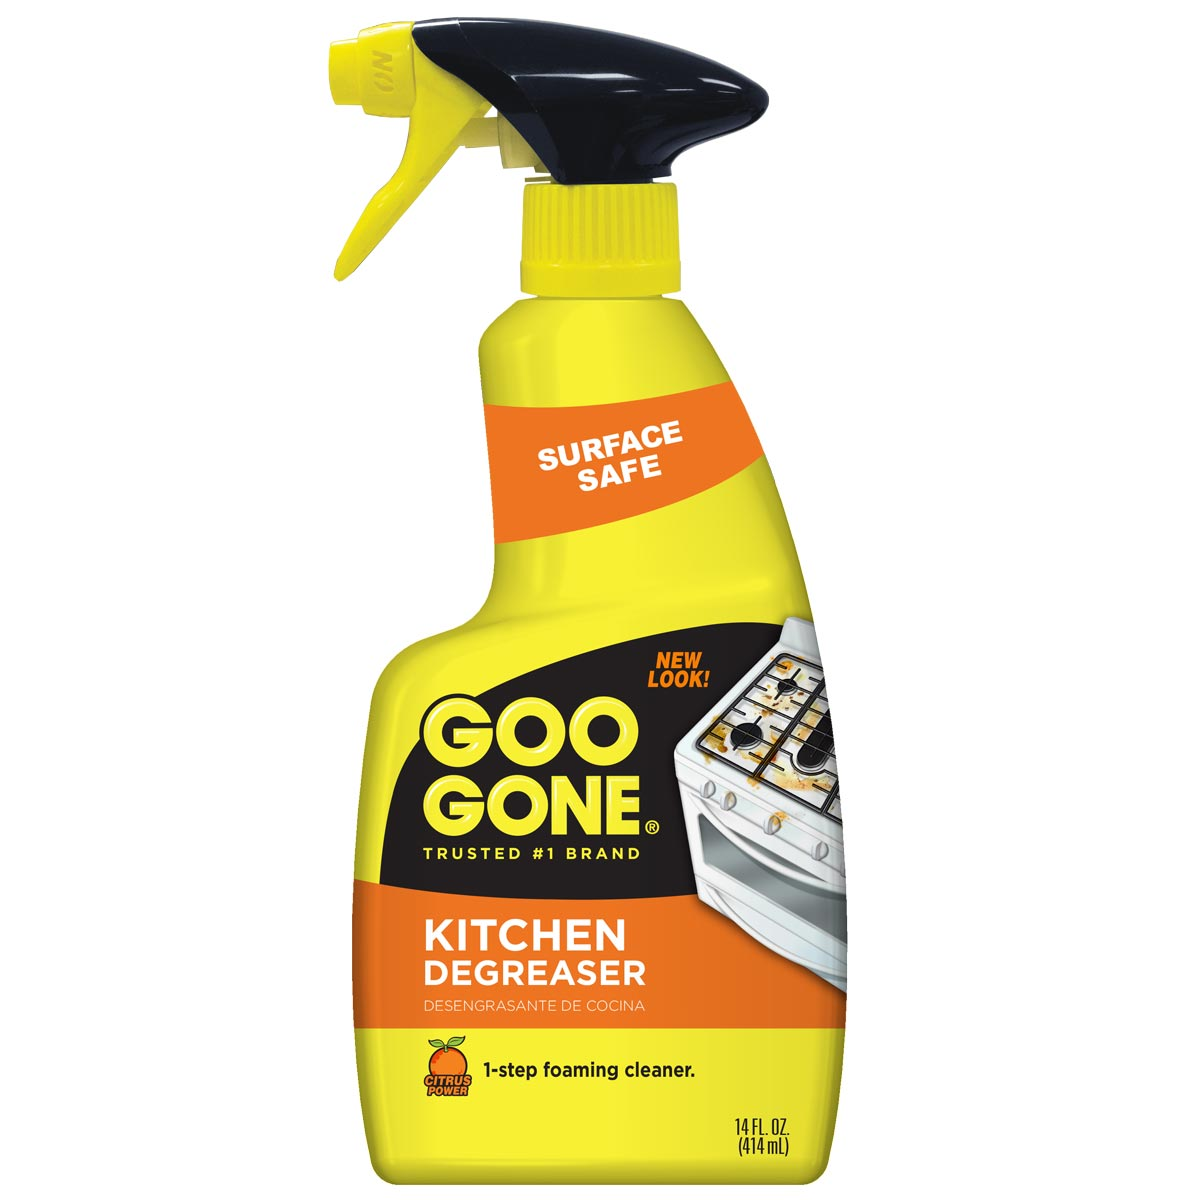 https://googone.com/media/catalog/product/k/i/kitchen-degreaser_front.jpg